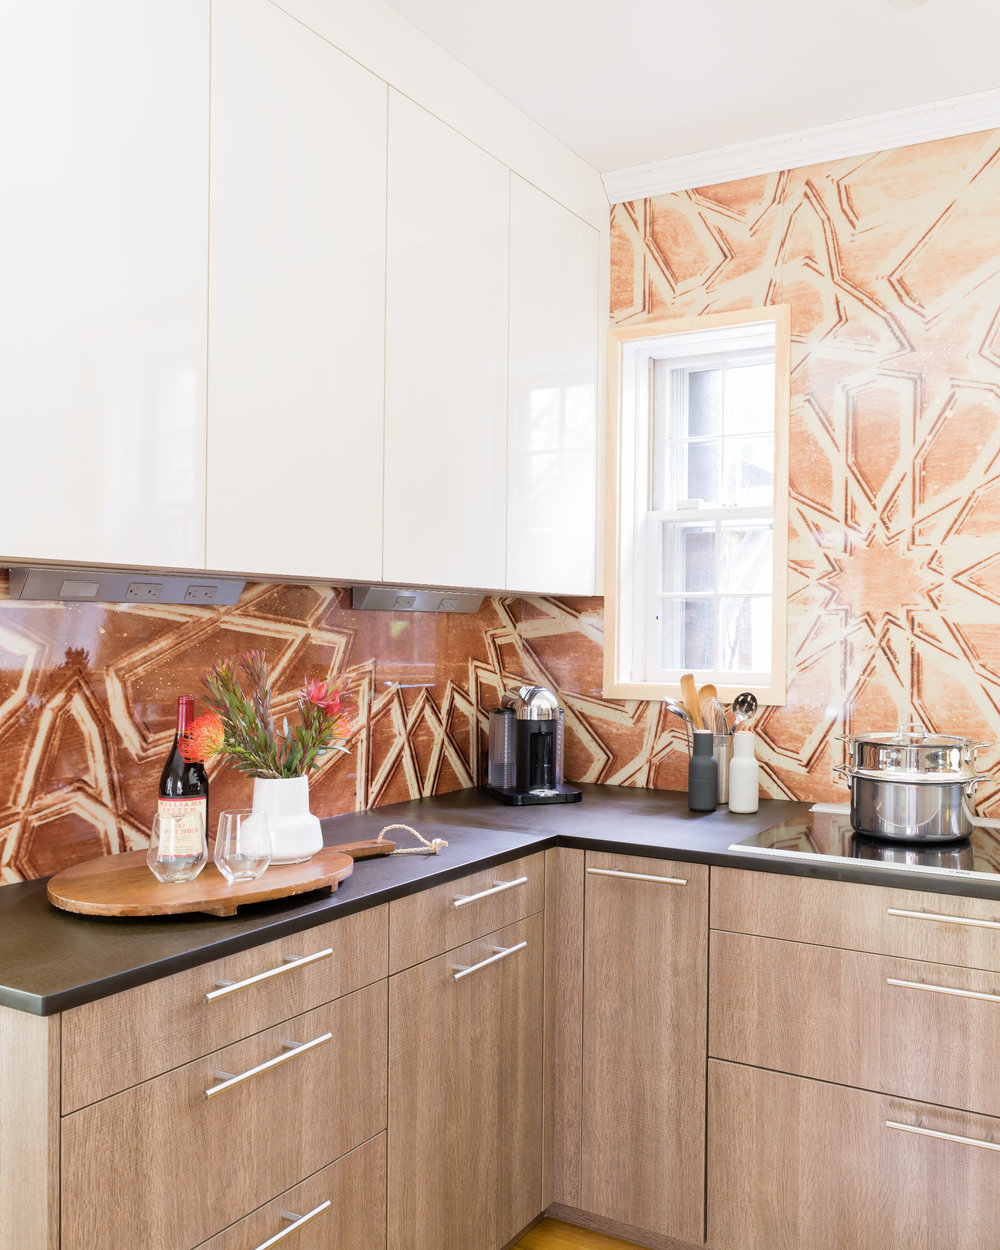 Moroccan style backsplash with oak veneer leicht cabinets in a modern kitchen. Wolf appliances, and a column wine fridge.